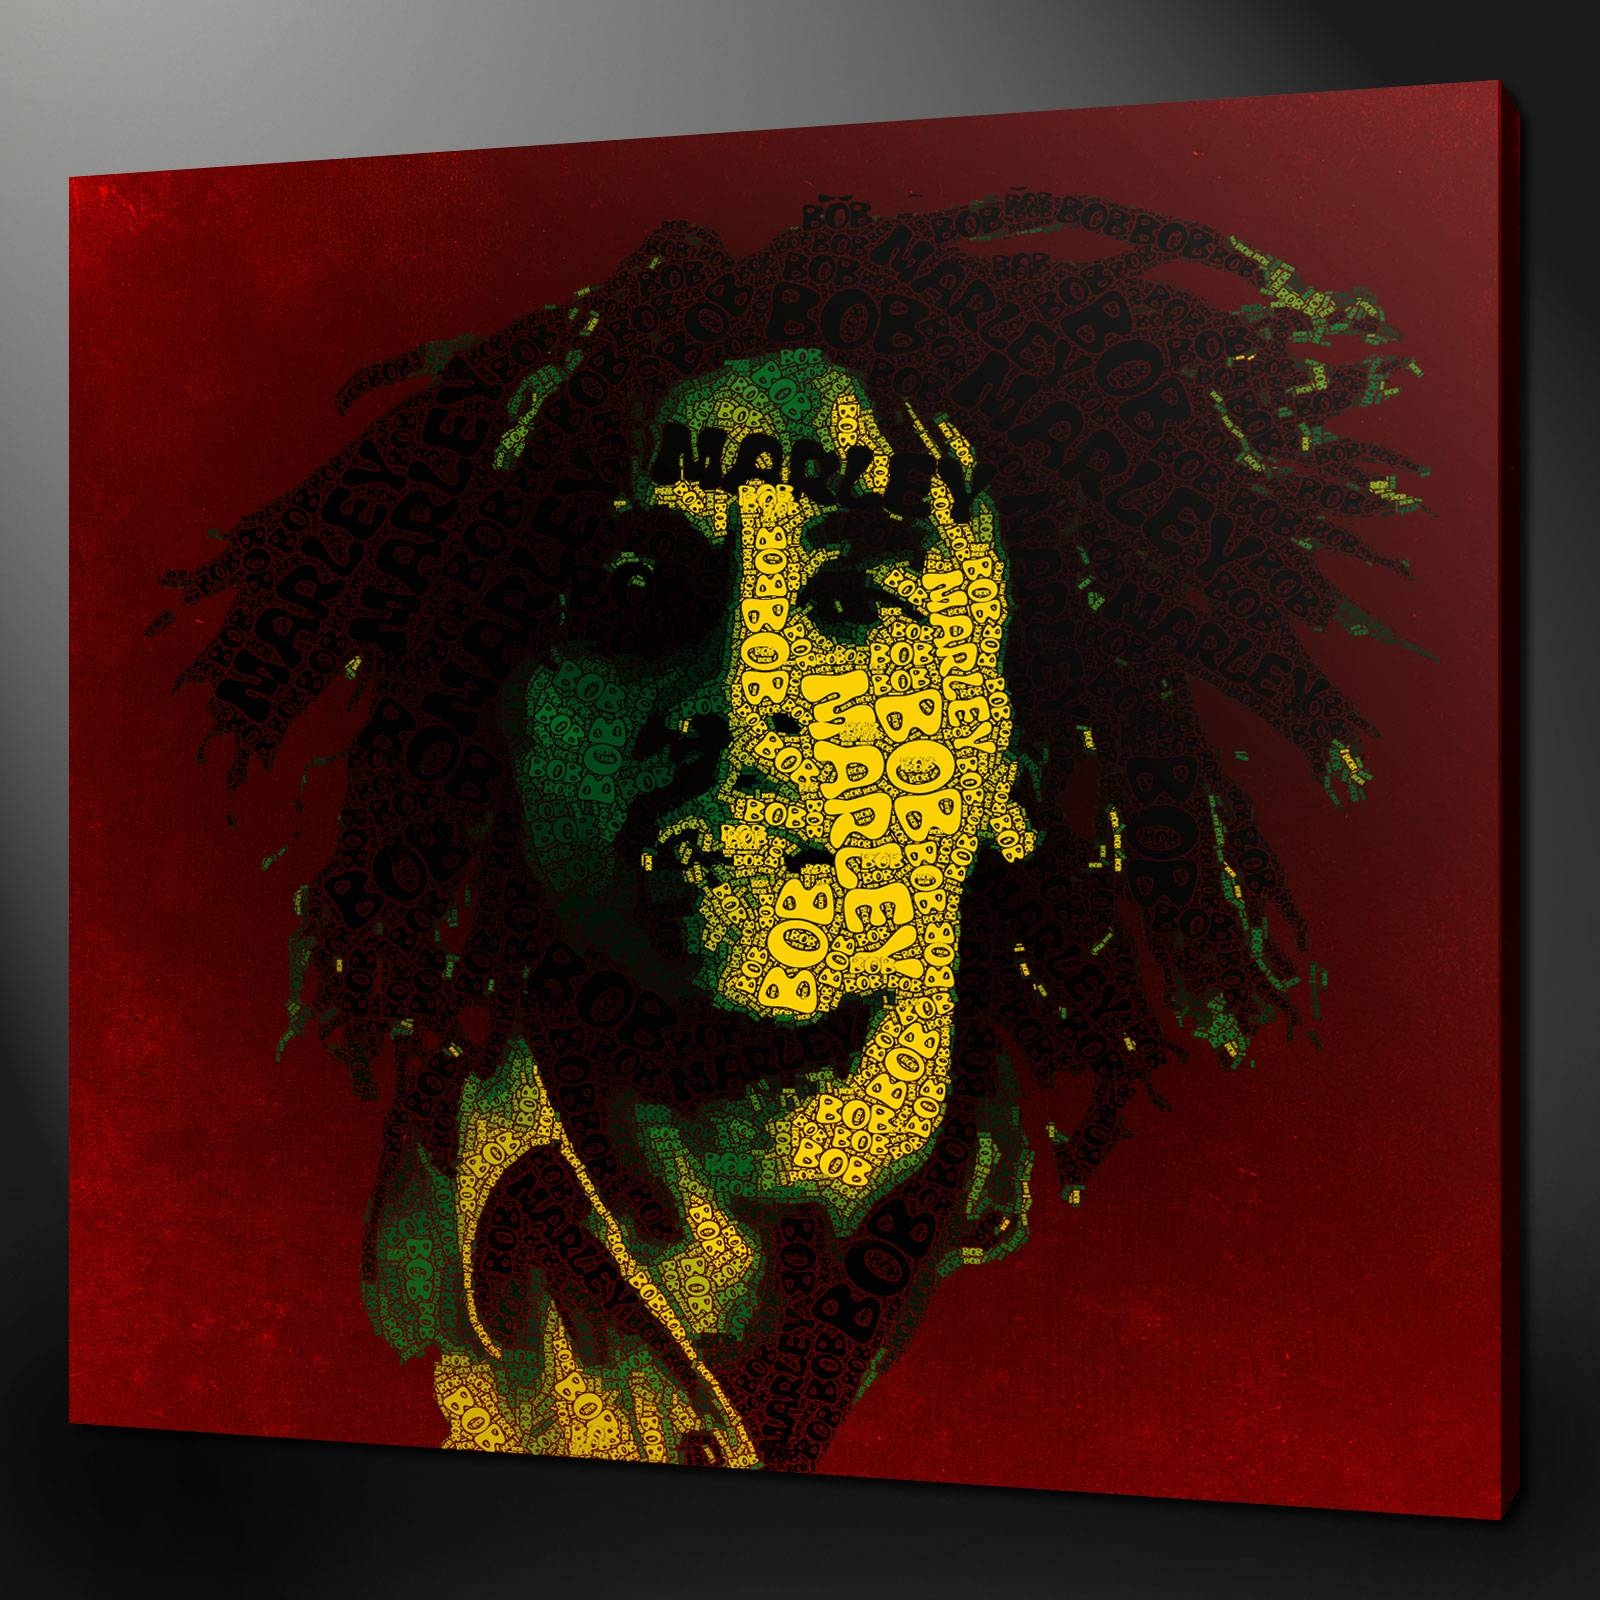 Bob Marley Typography Music Reggae Wall Art Picture Canvas Print Intended For Current Bob Marley Canvas Wall Art (View 19 of 25)